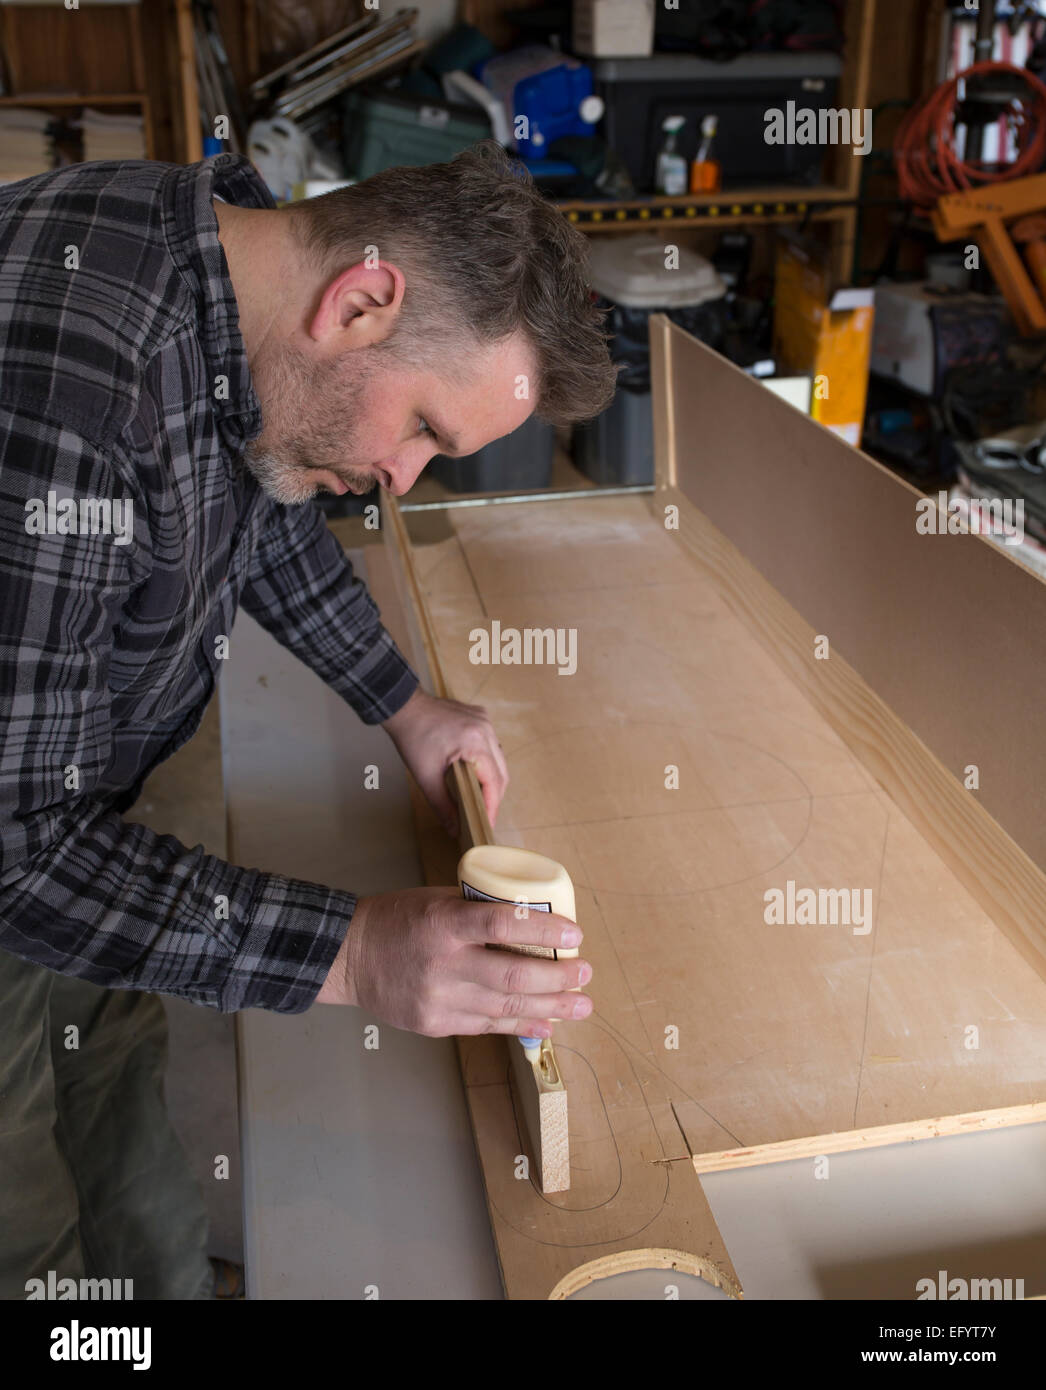 Man constructing woodworking project - Stock Image